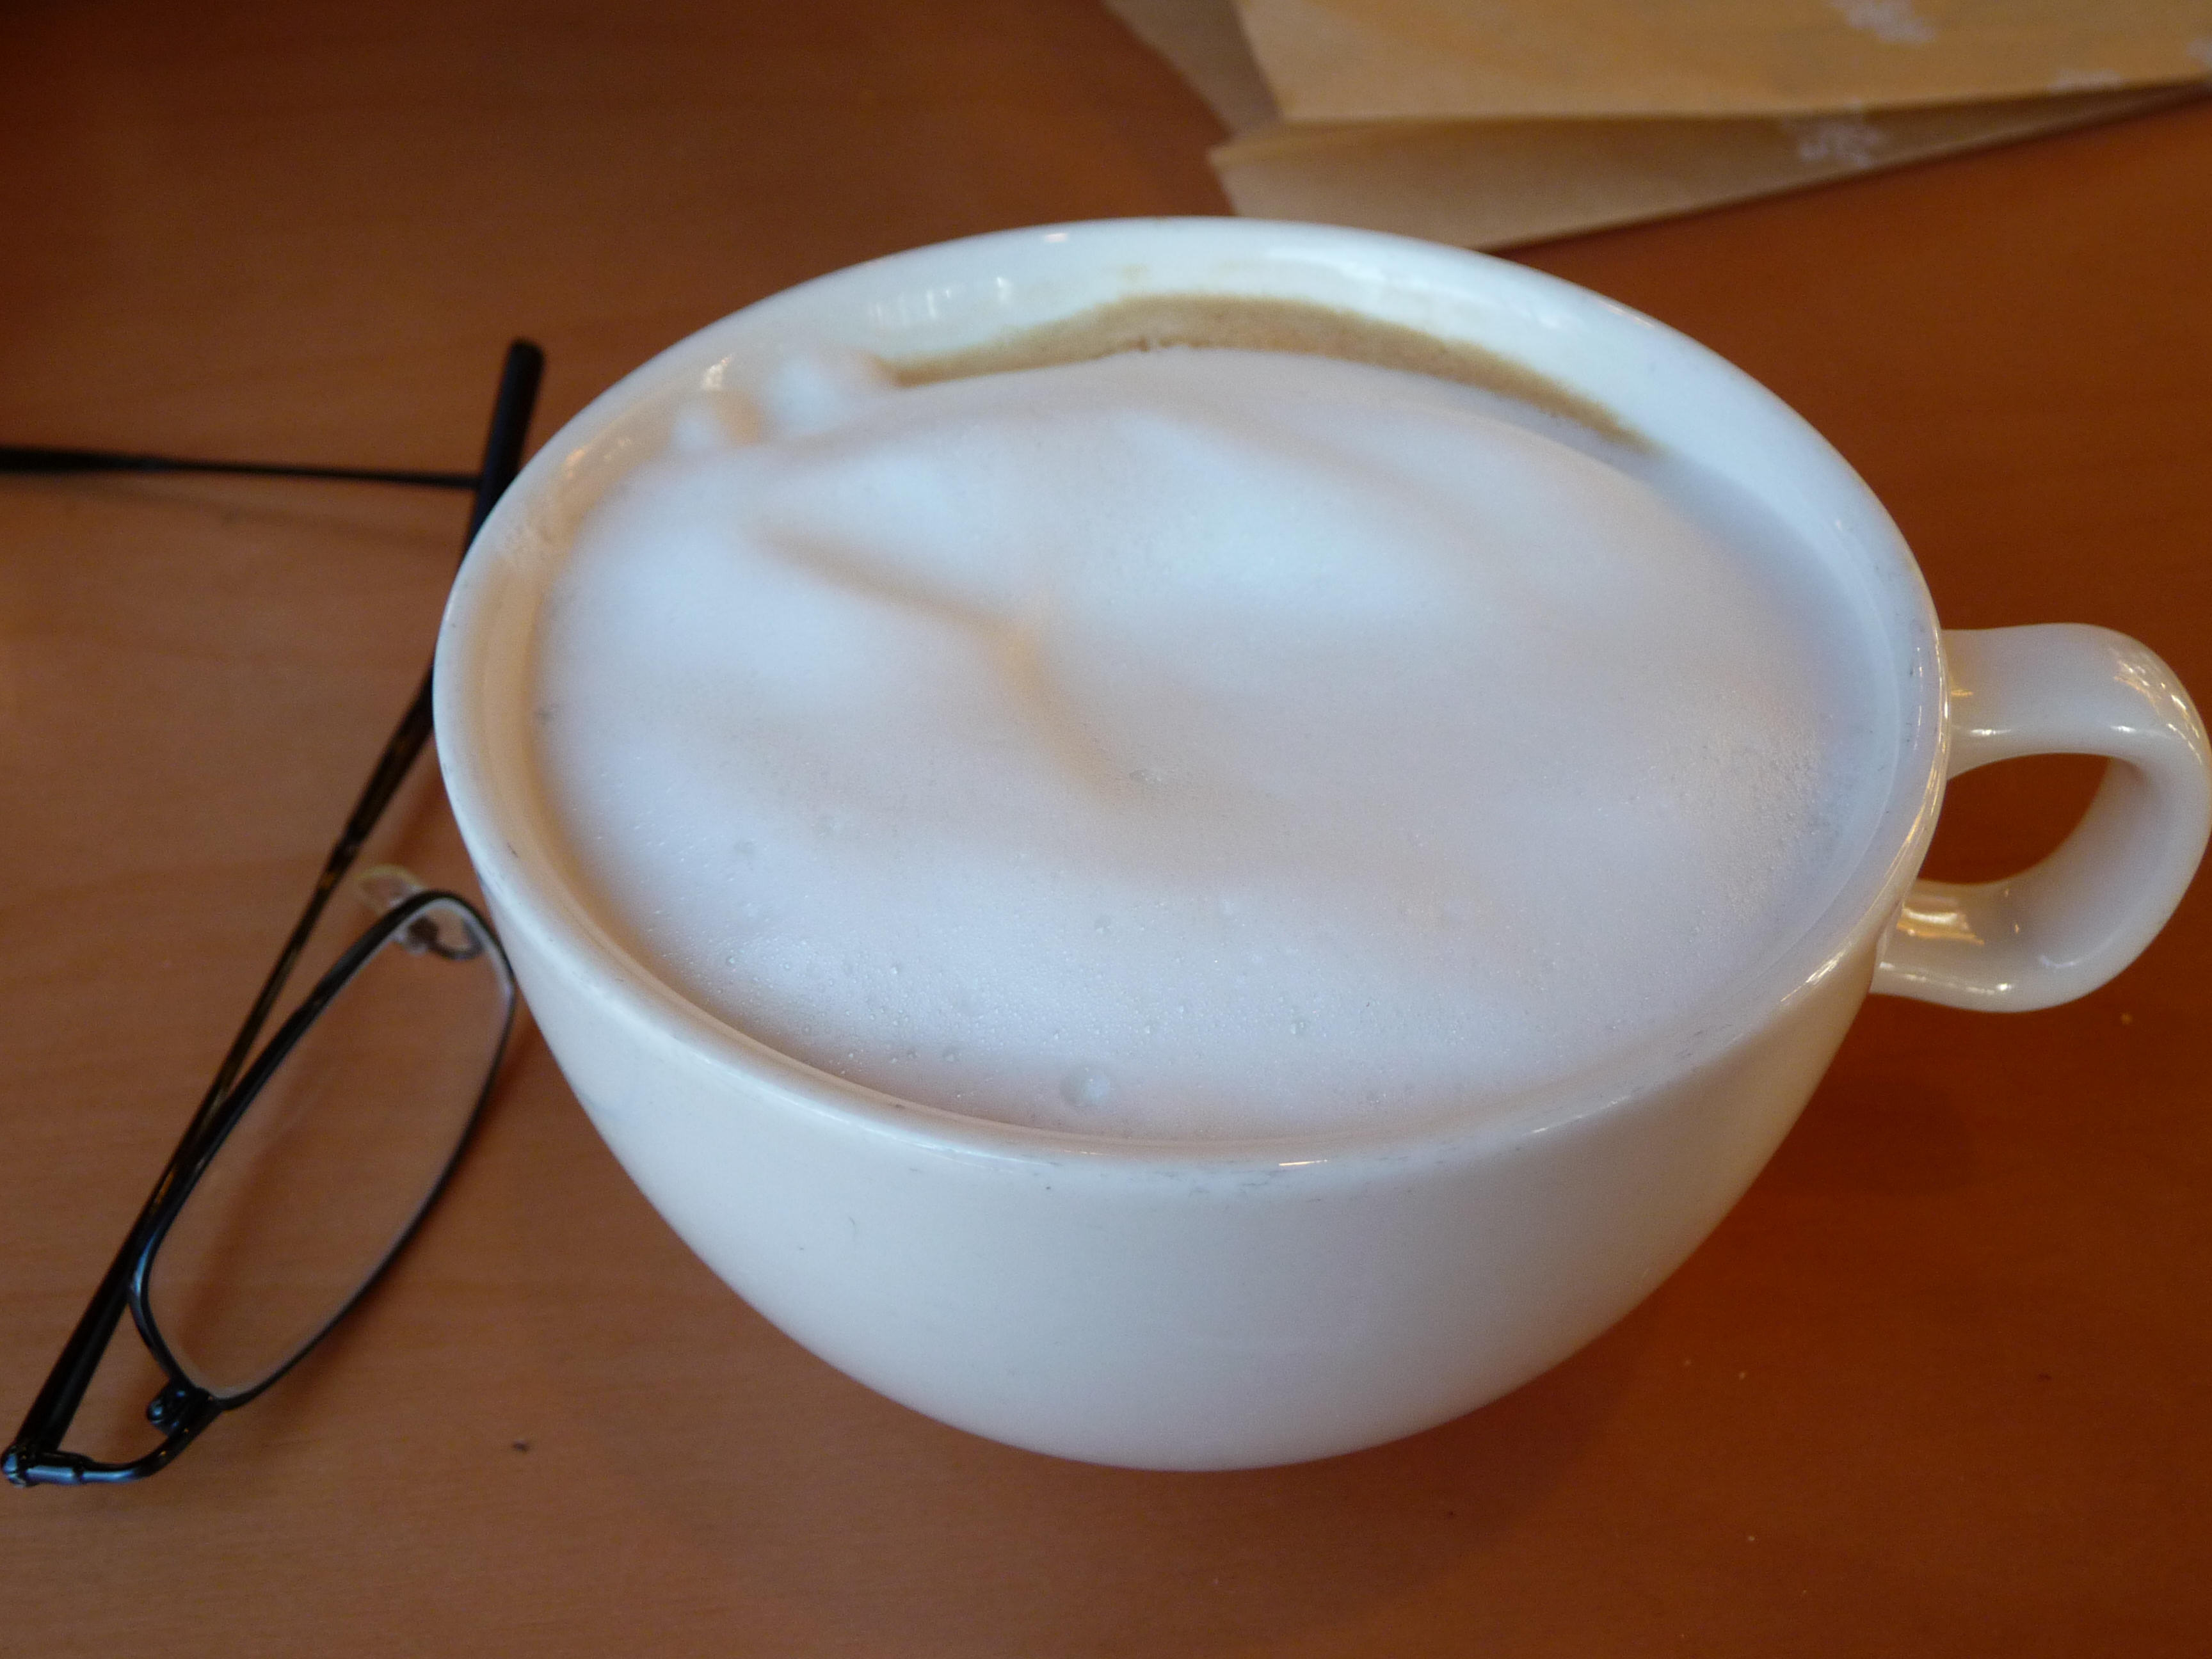 It is a pretty (though large) cappuccino